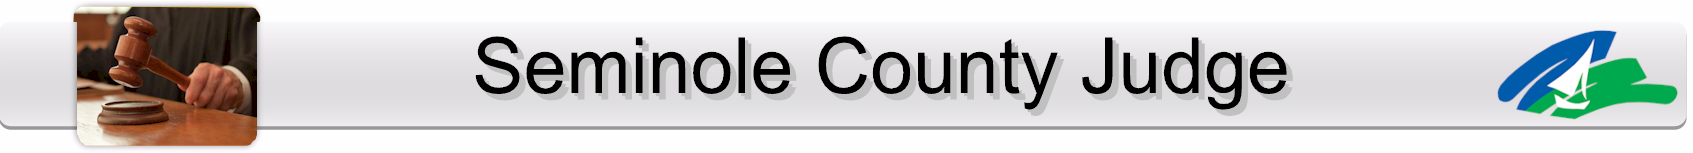 County Judge Jerri Collins Page Banner